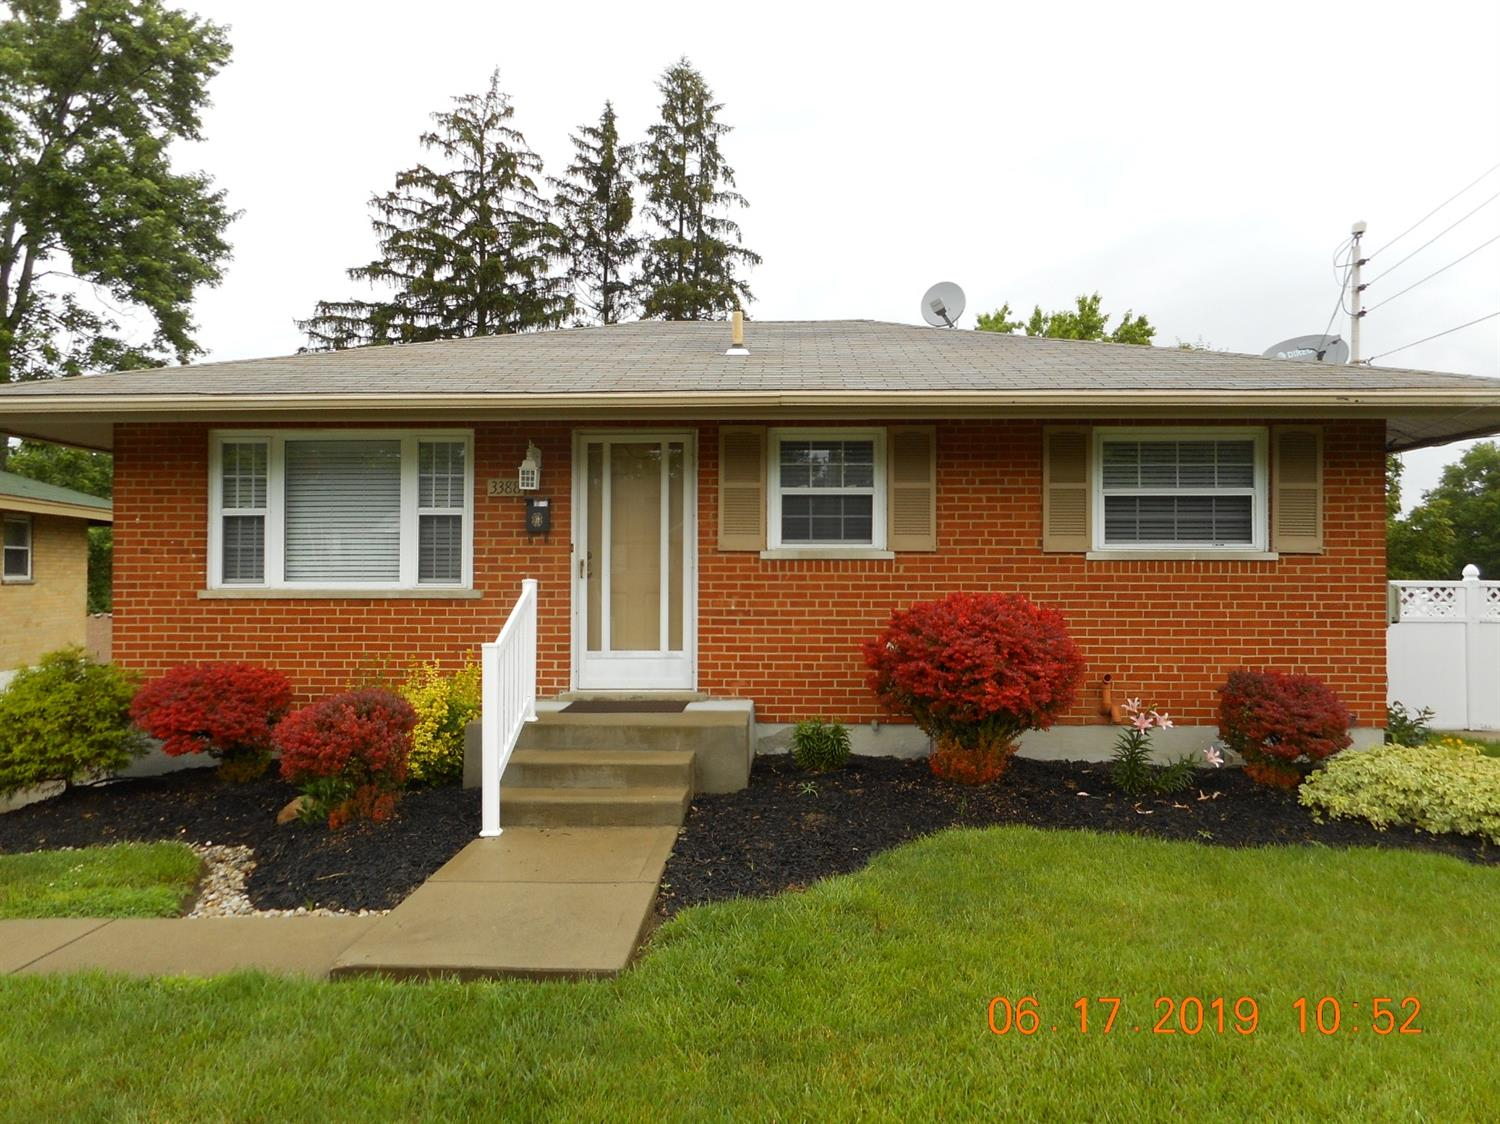 Photo 3 for 3388 Lakemeadow Ct White Oak, OH 45239